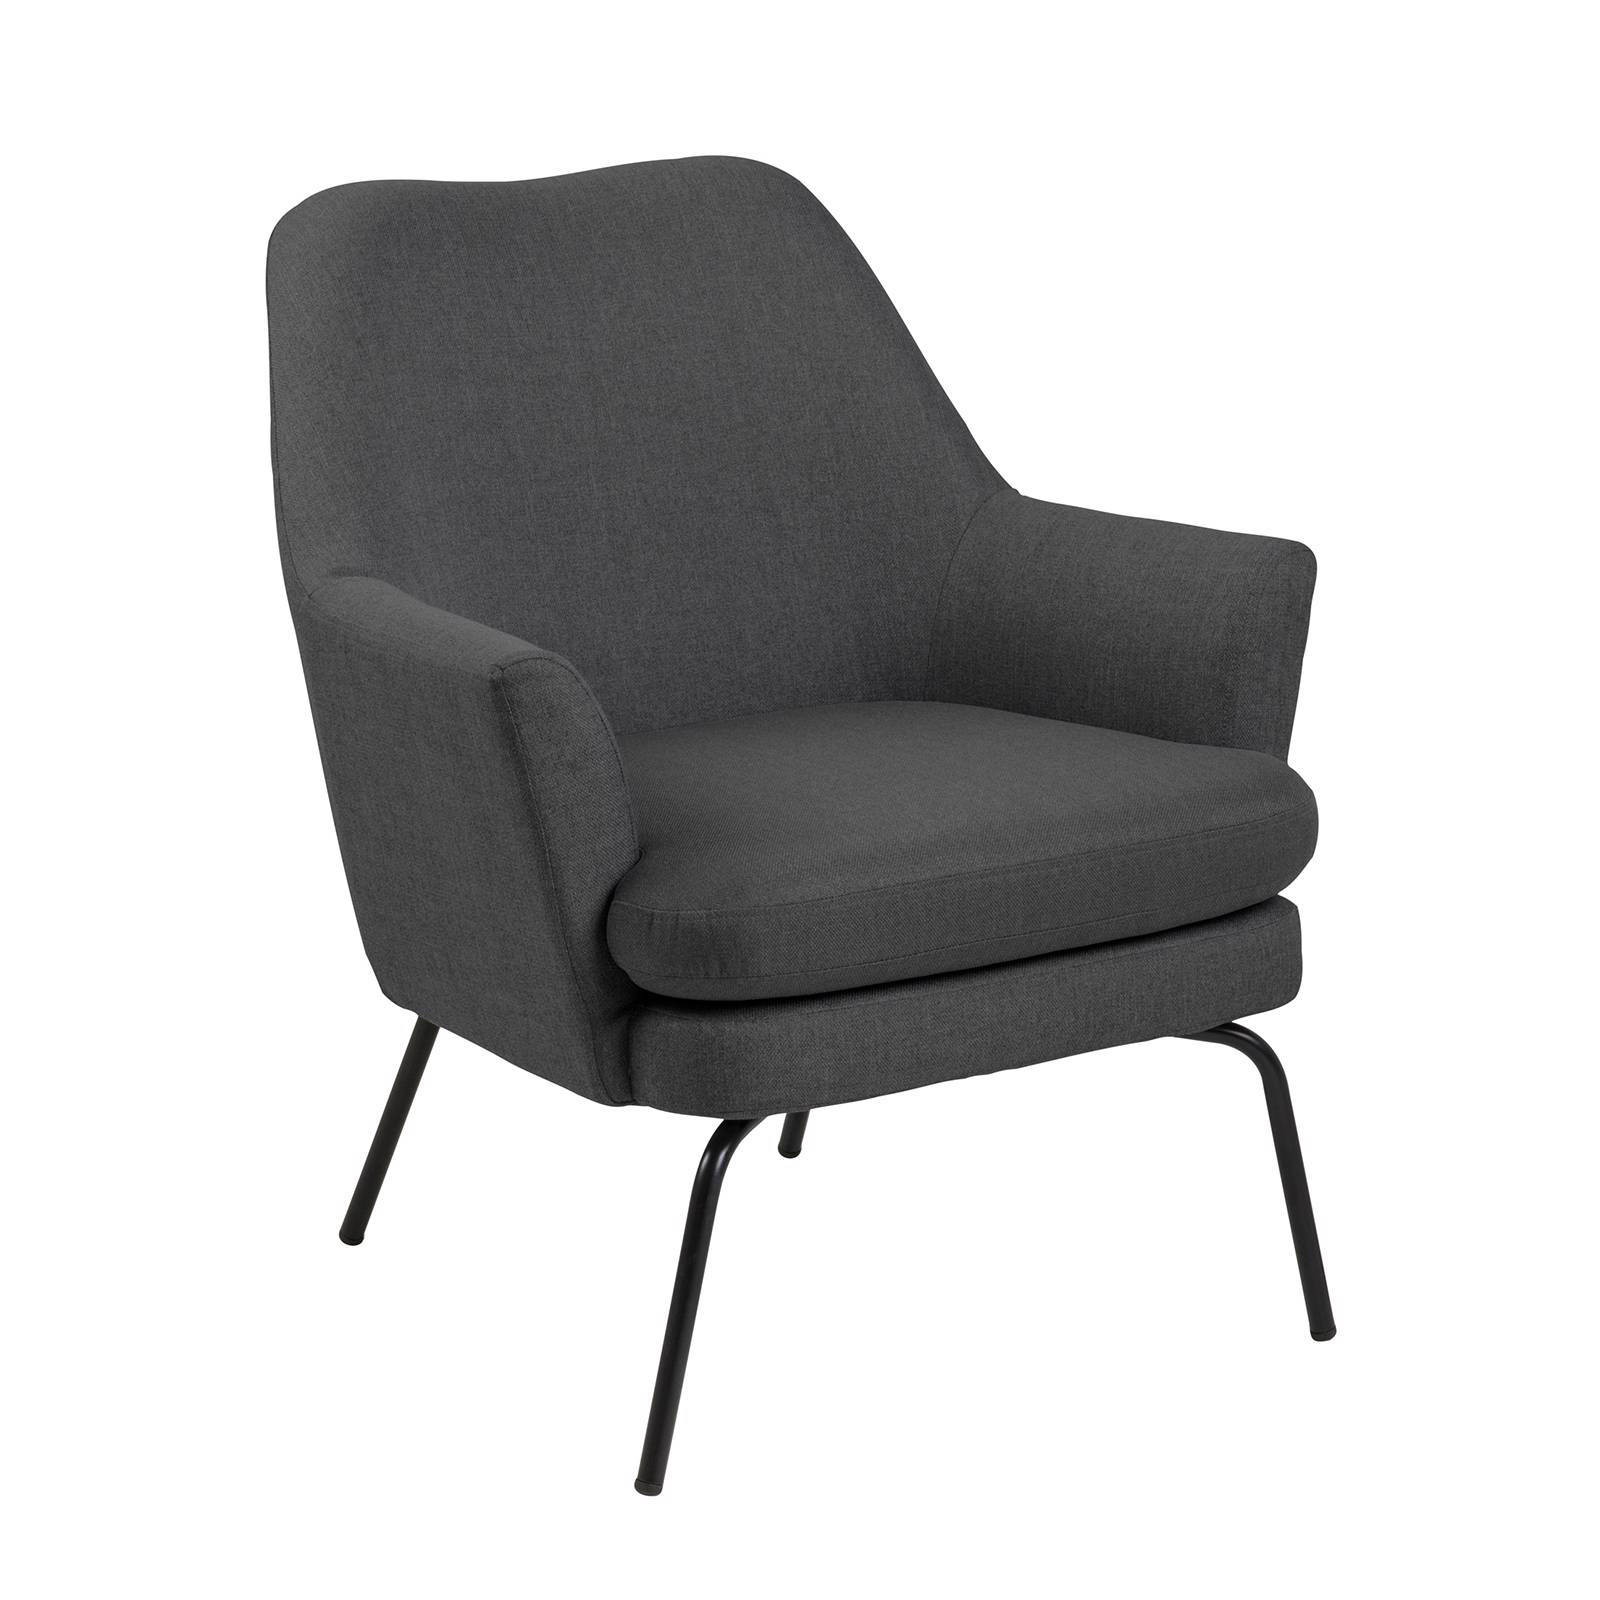 whkmp's own fauteuil Romy